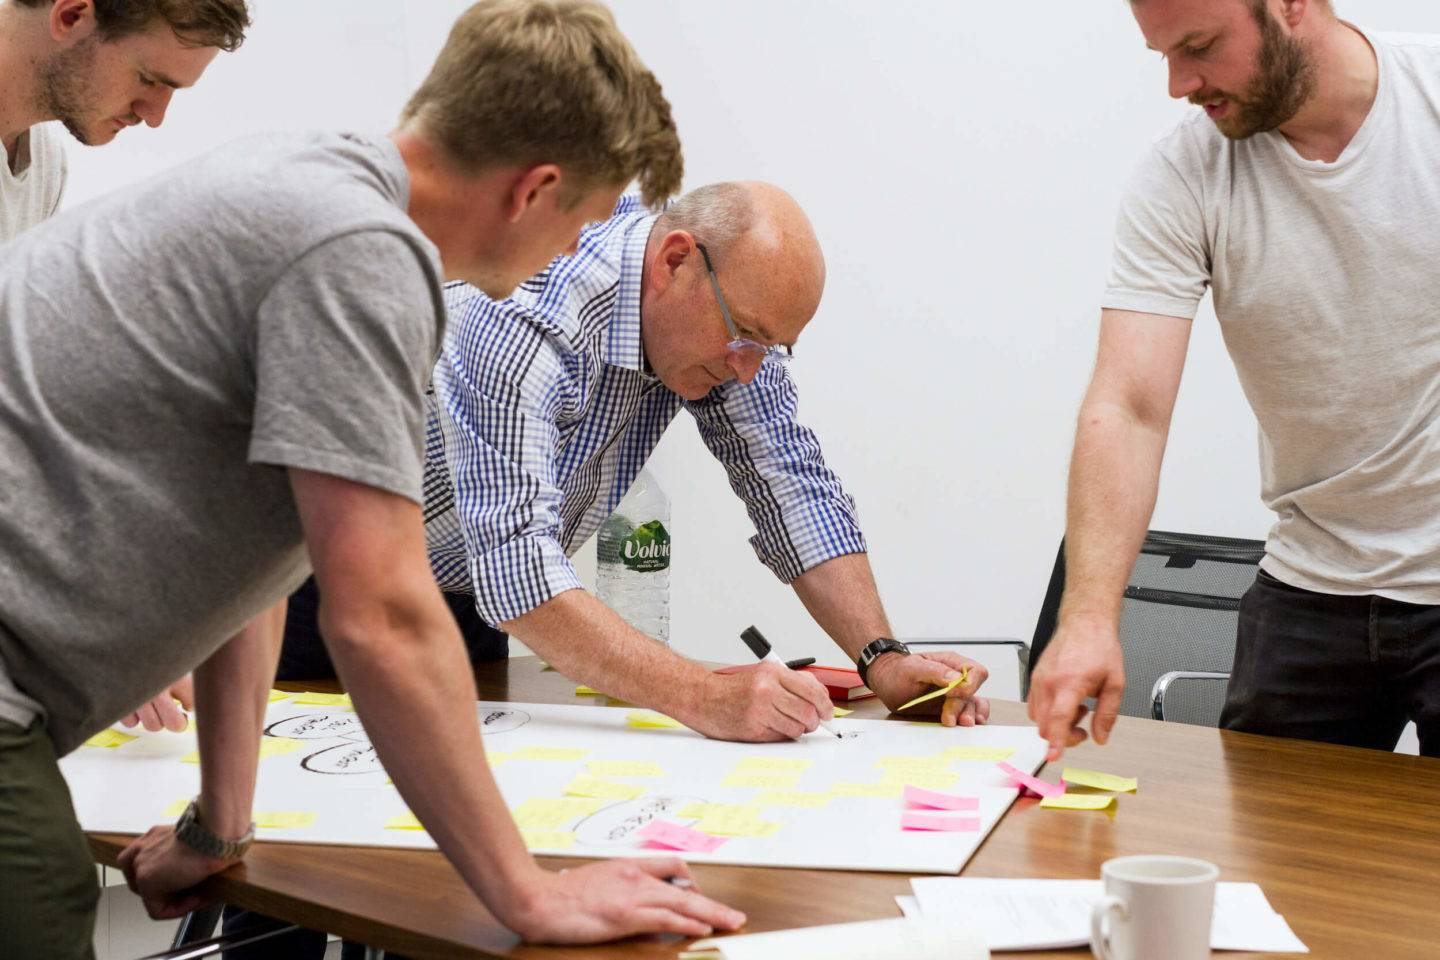 Four people leaning over a table, one of them drawing on a large sheet of paper